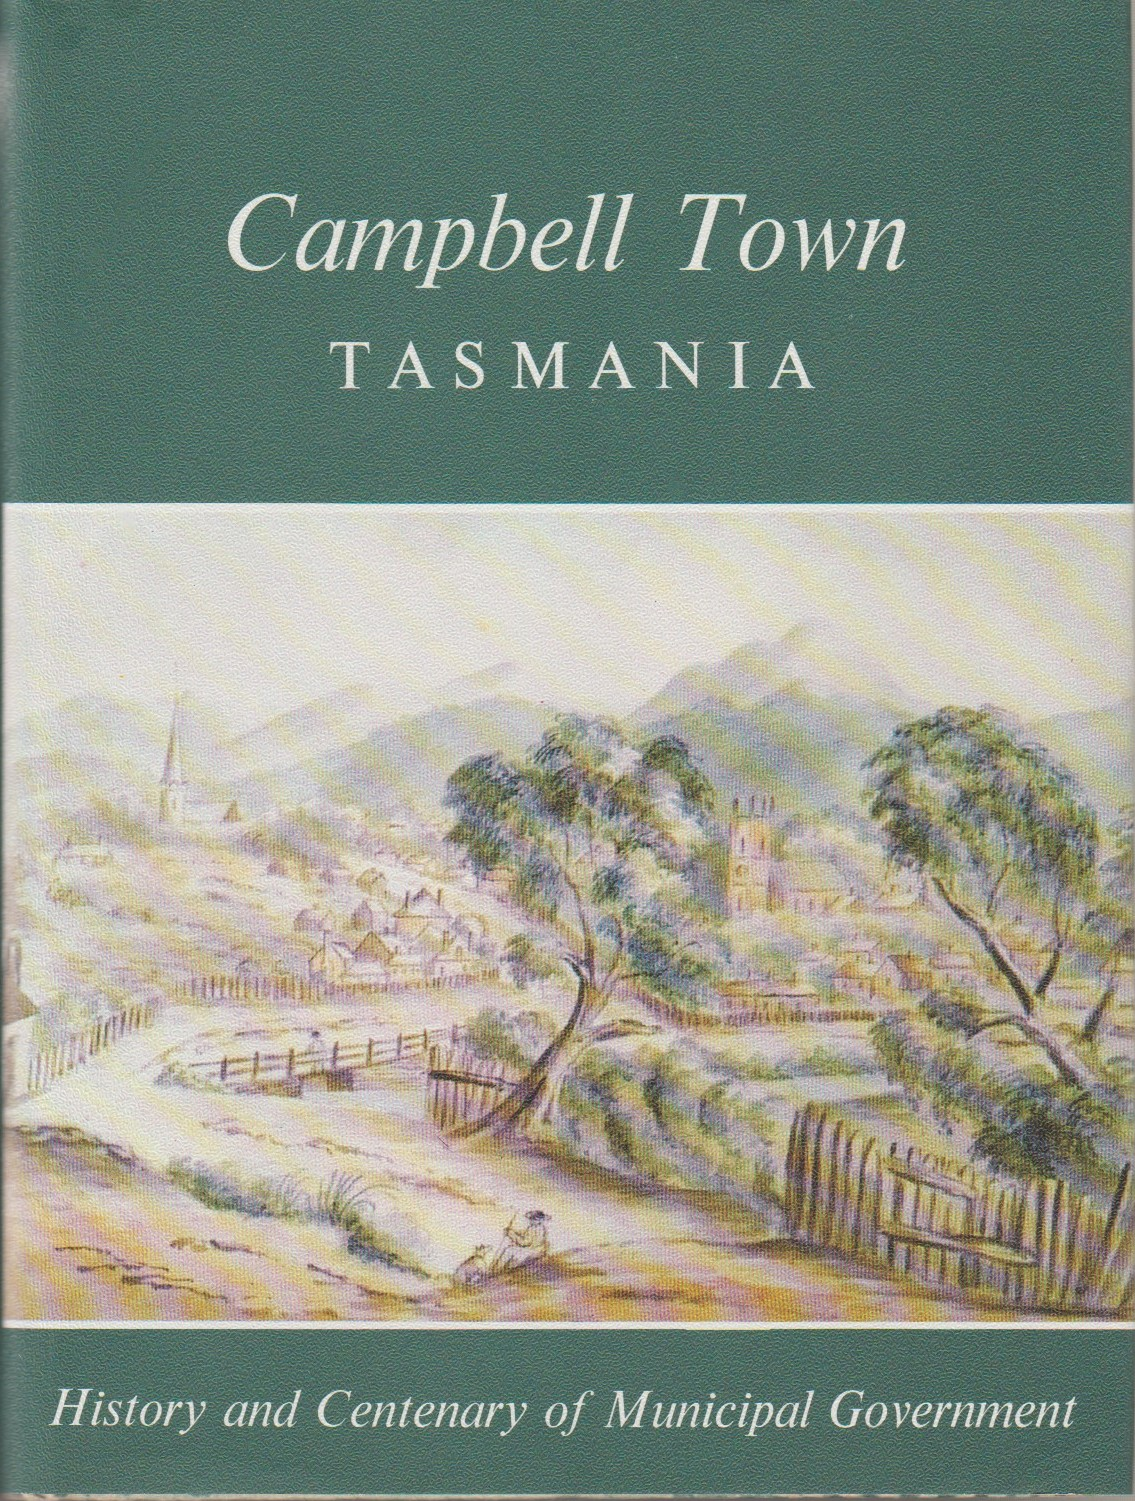 Campbell Town Tasmania, limited edition - signed